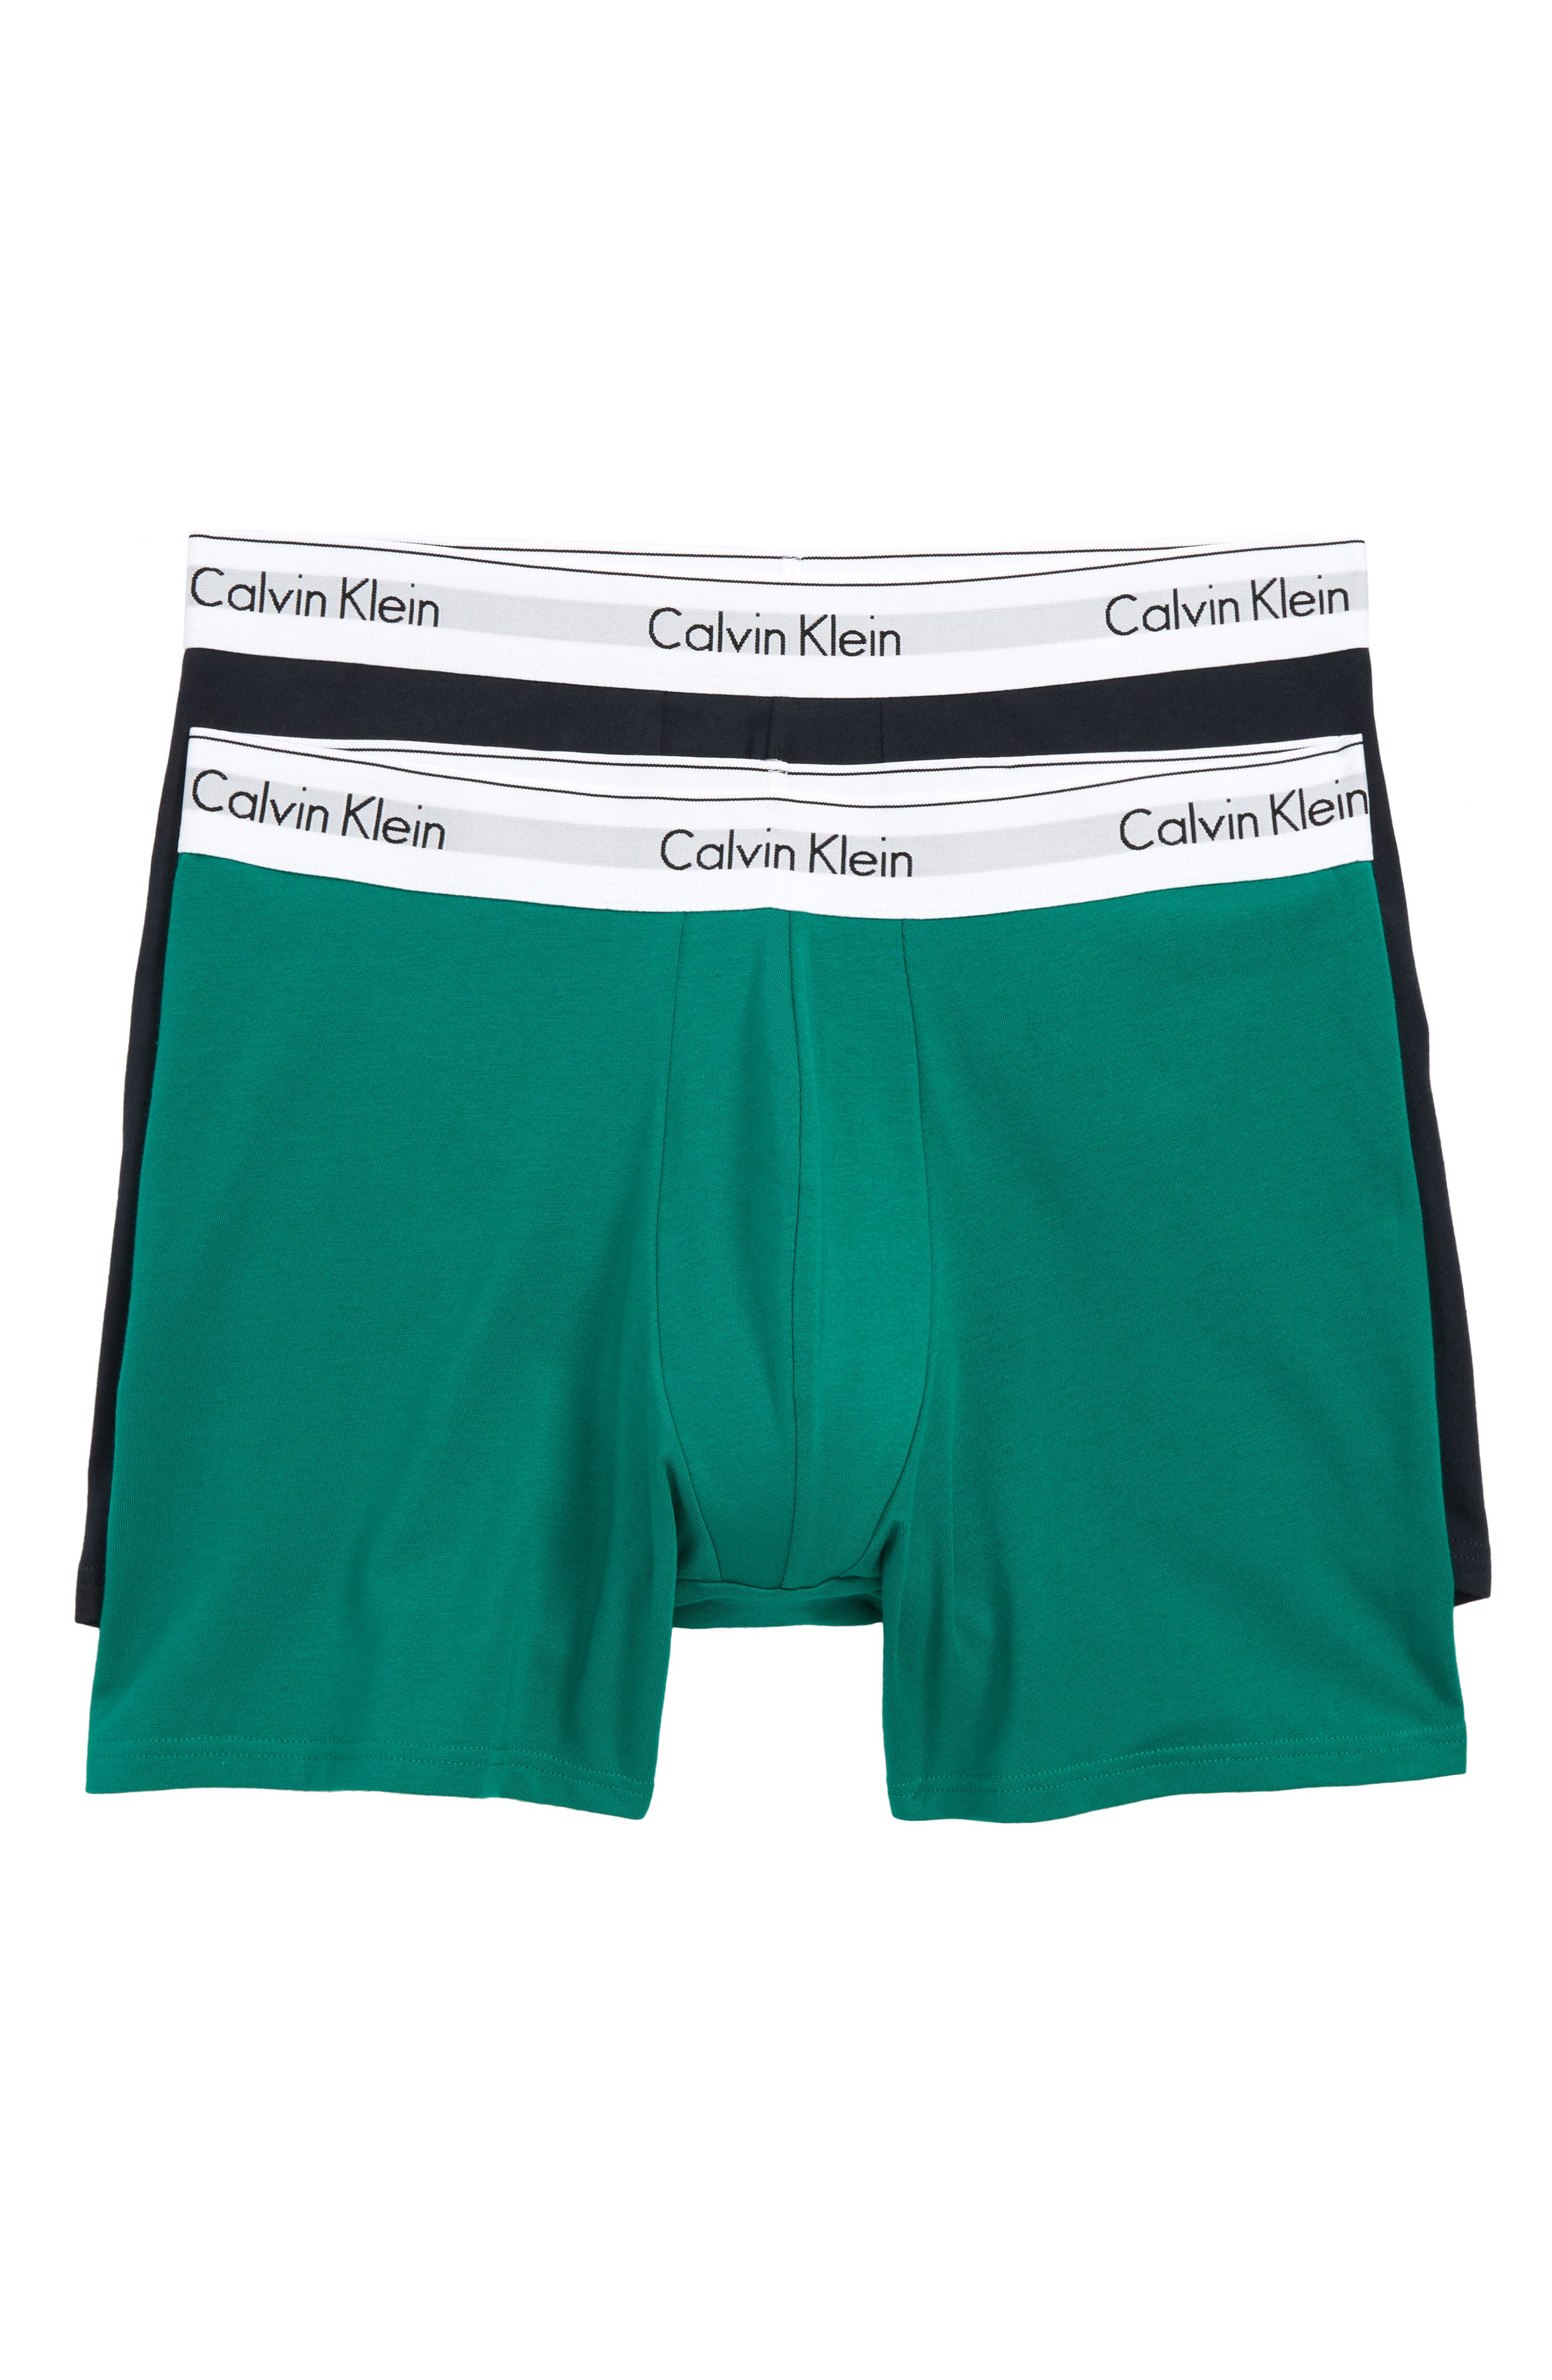 Modern Assorted 2-Pack Stretch Cotton Boxer Briefs,                             Main thumbnail 1, color,                             311